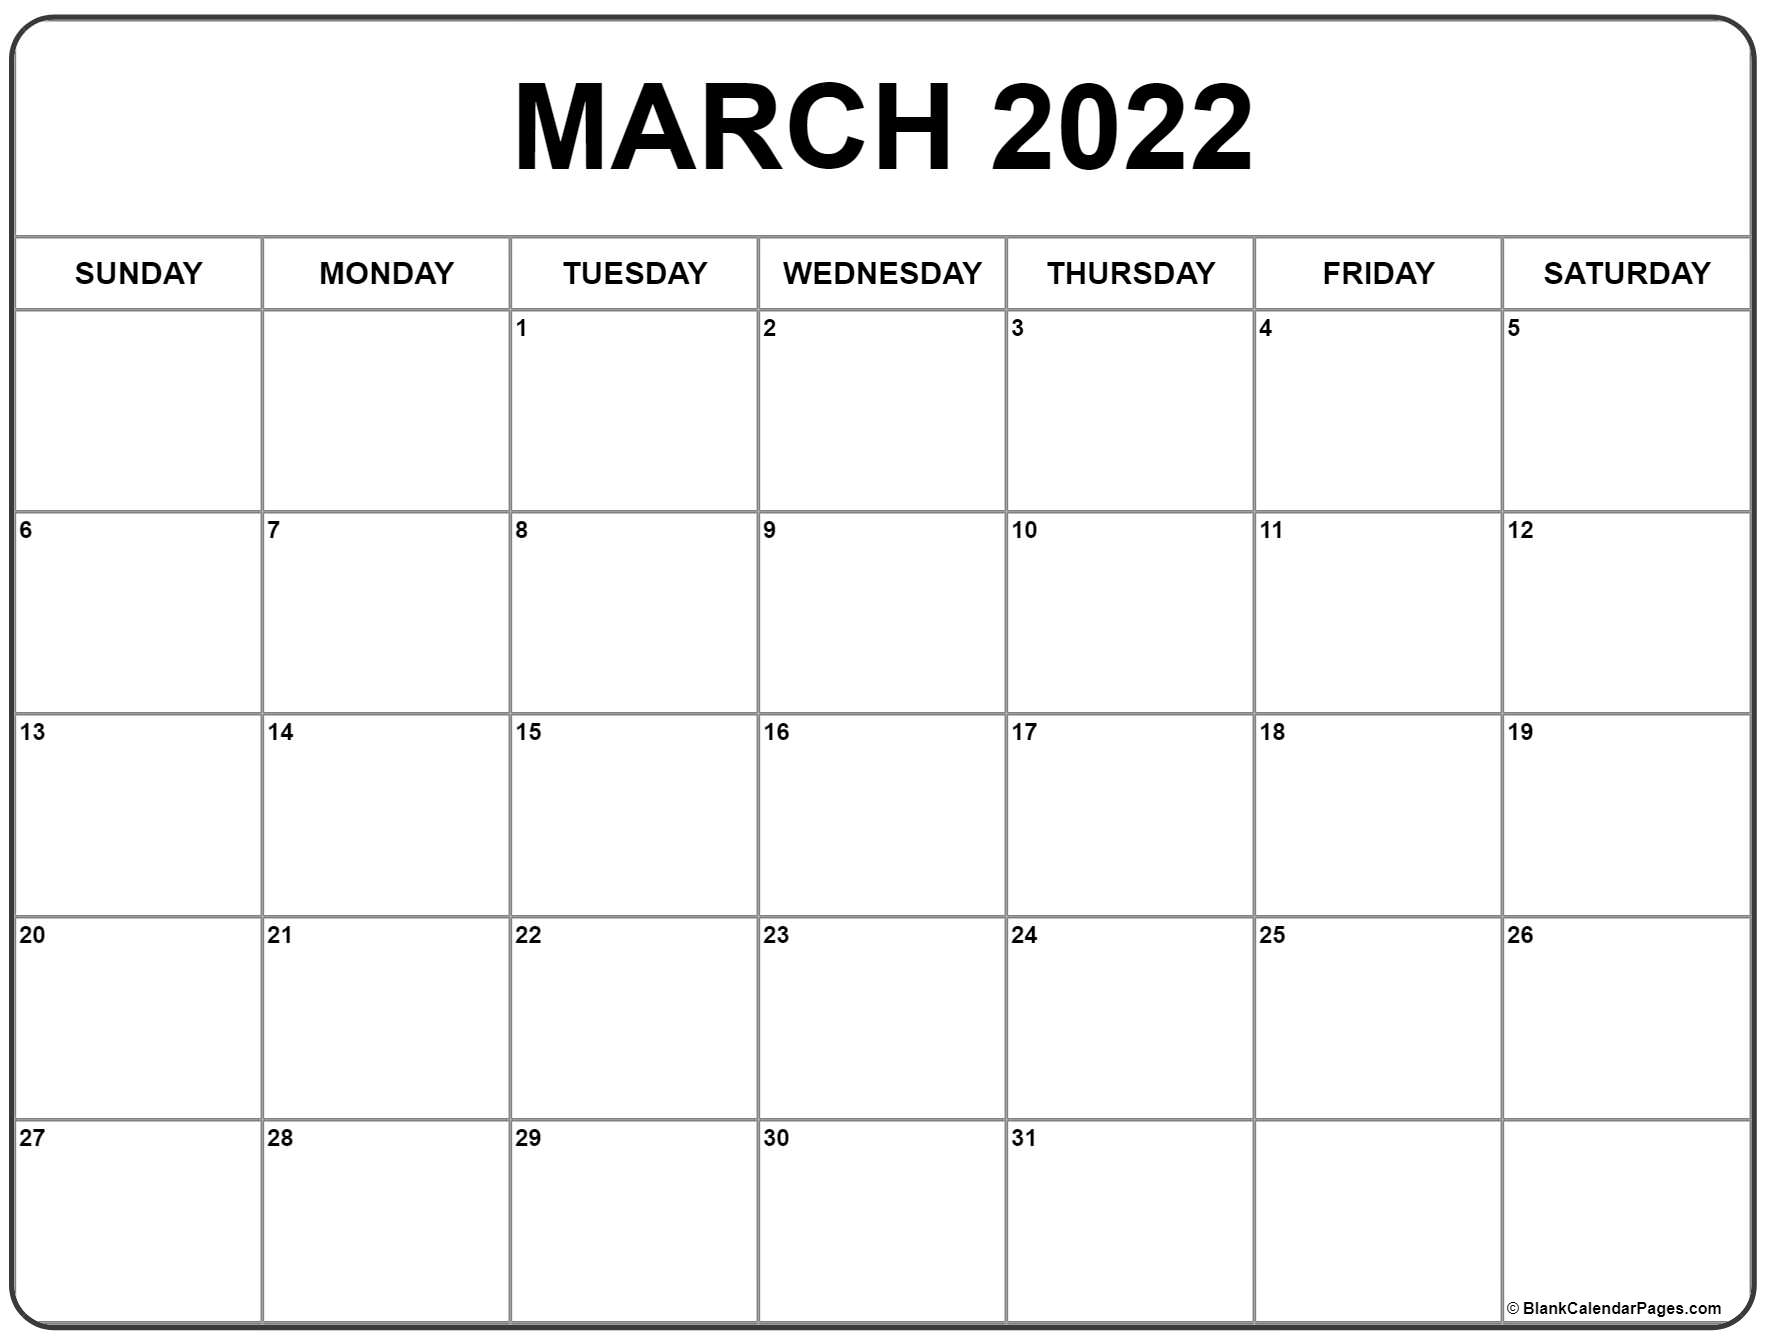 Time rules our lives, with appointments and deadlines guiding us through our days. March 2022 calendar | free printable calendar templates